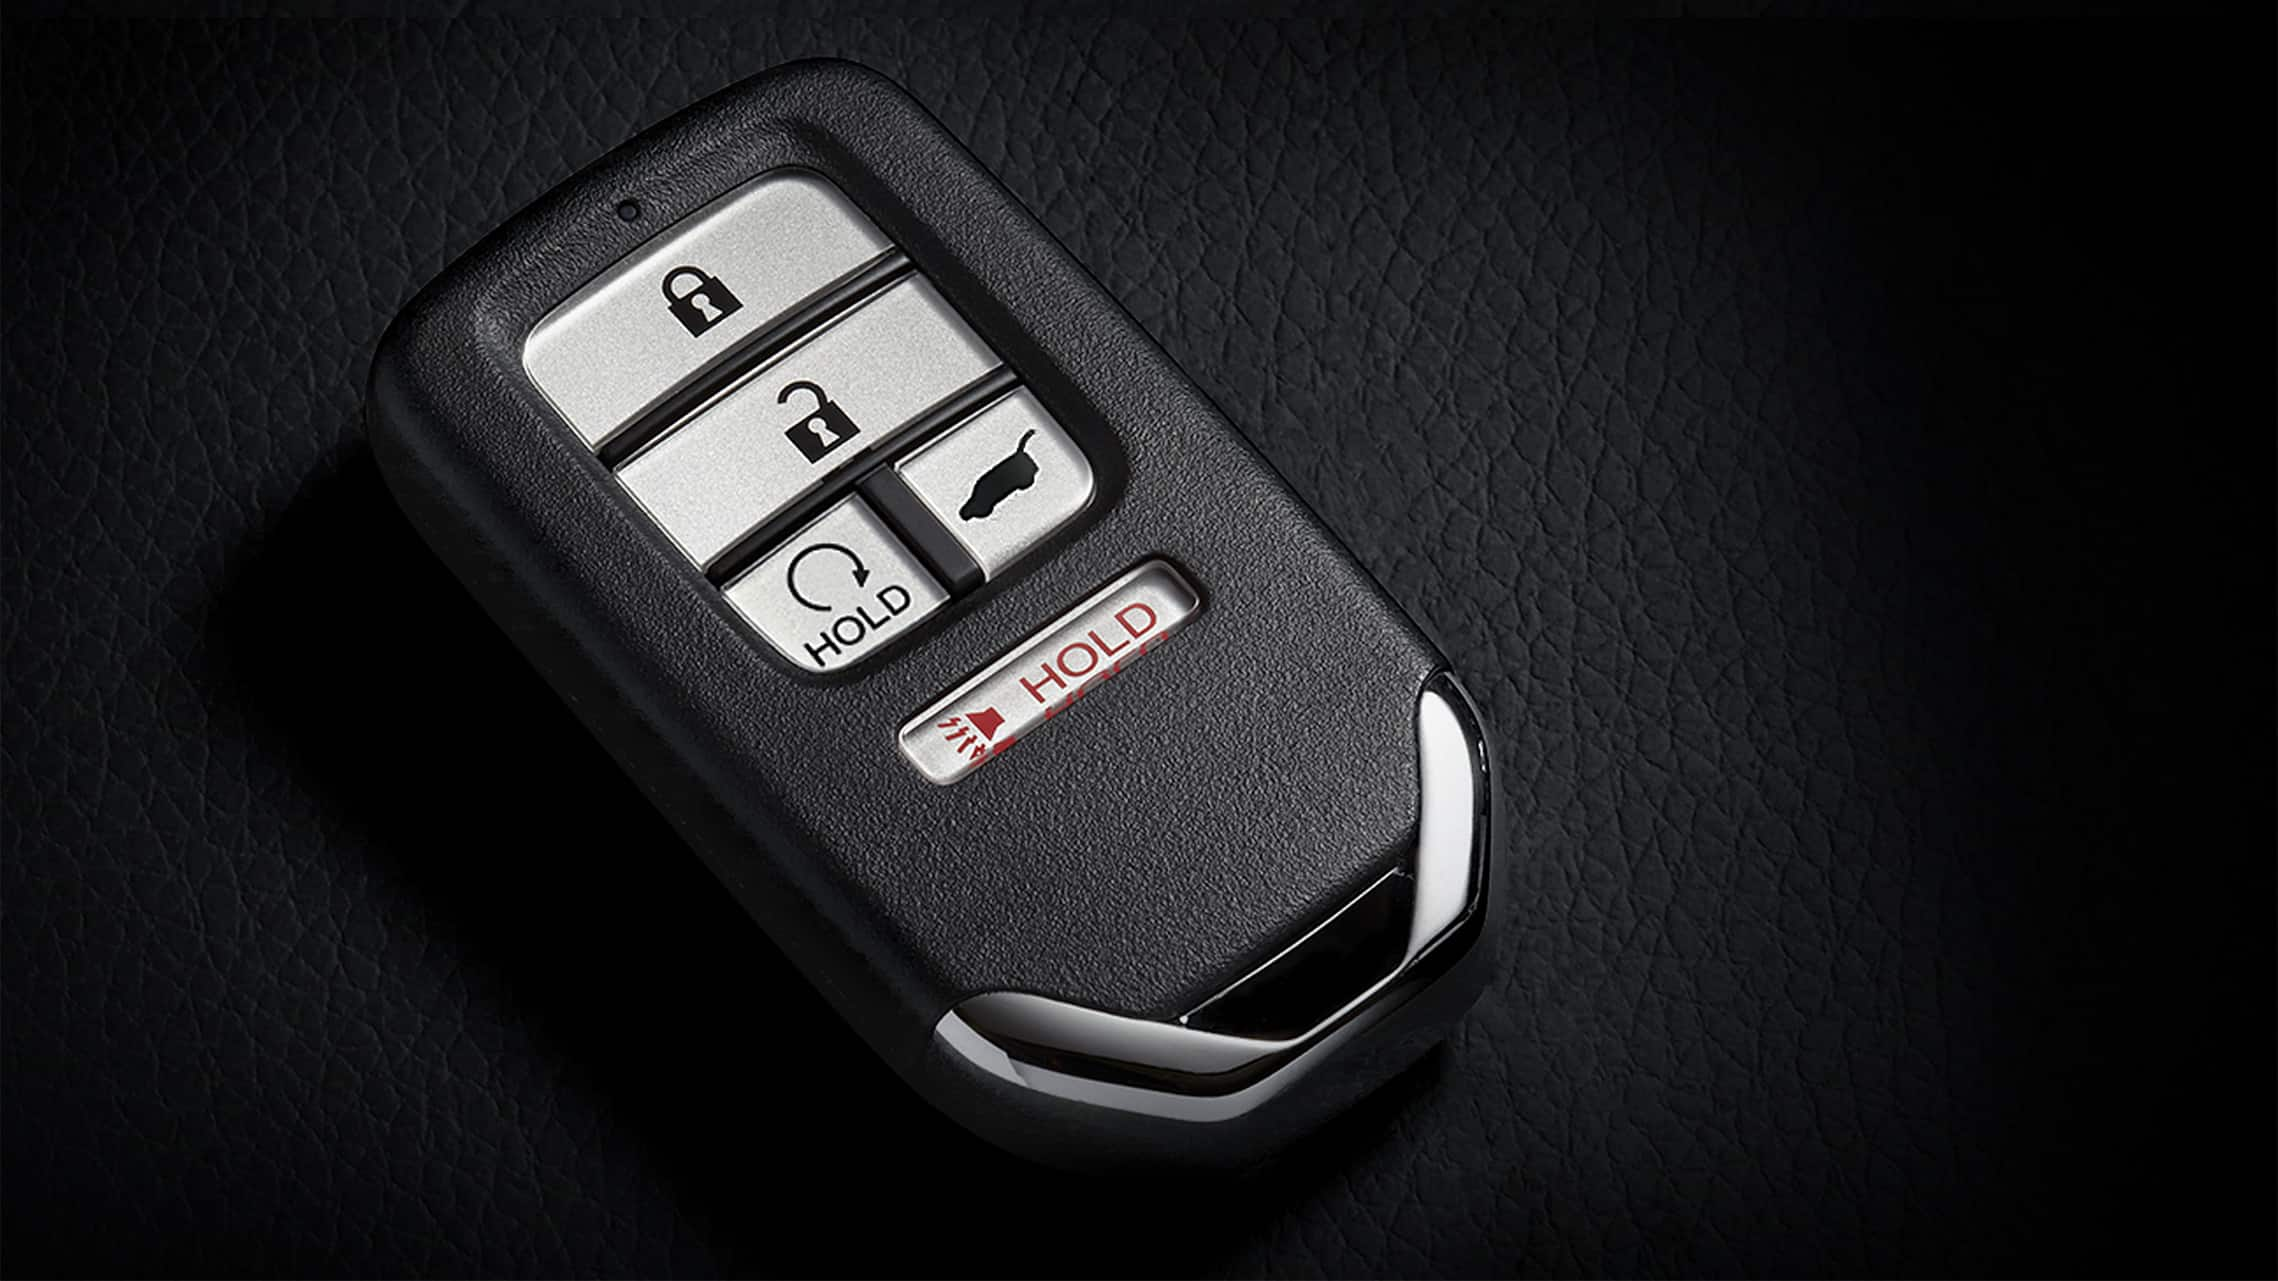 Key fob with remote engine start button detail for 2020 Honda Civic Sport Touring Hatchback.